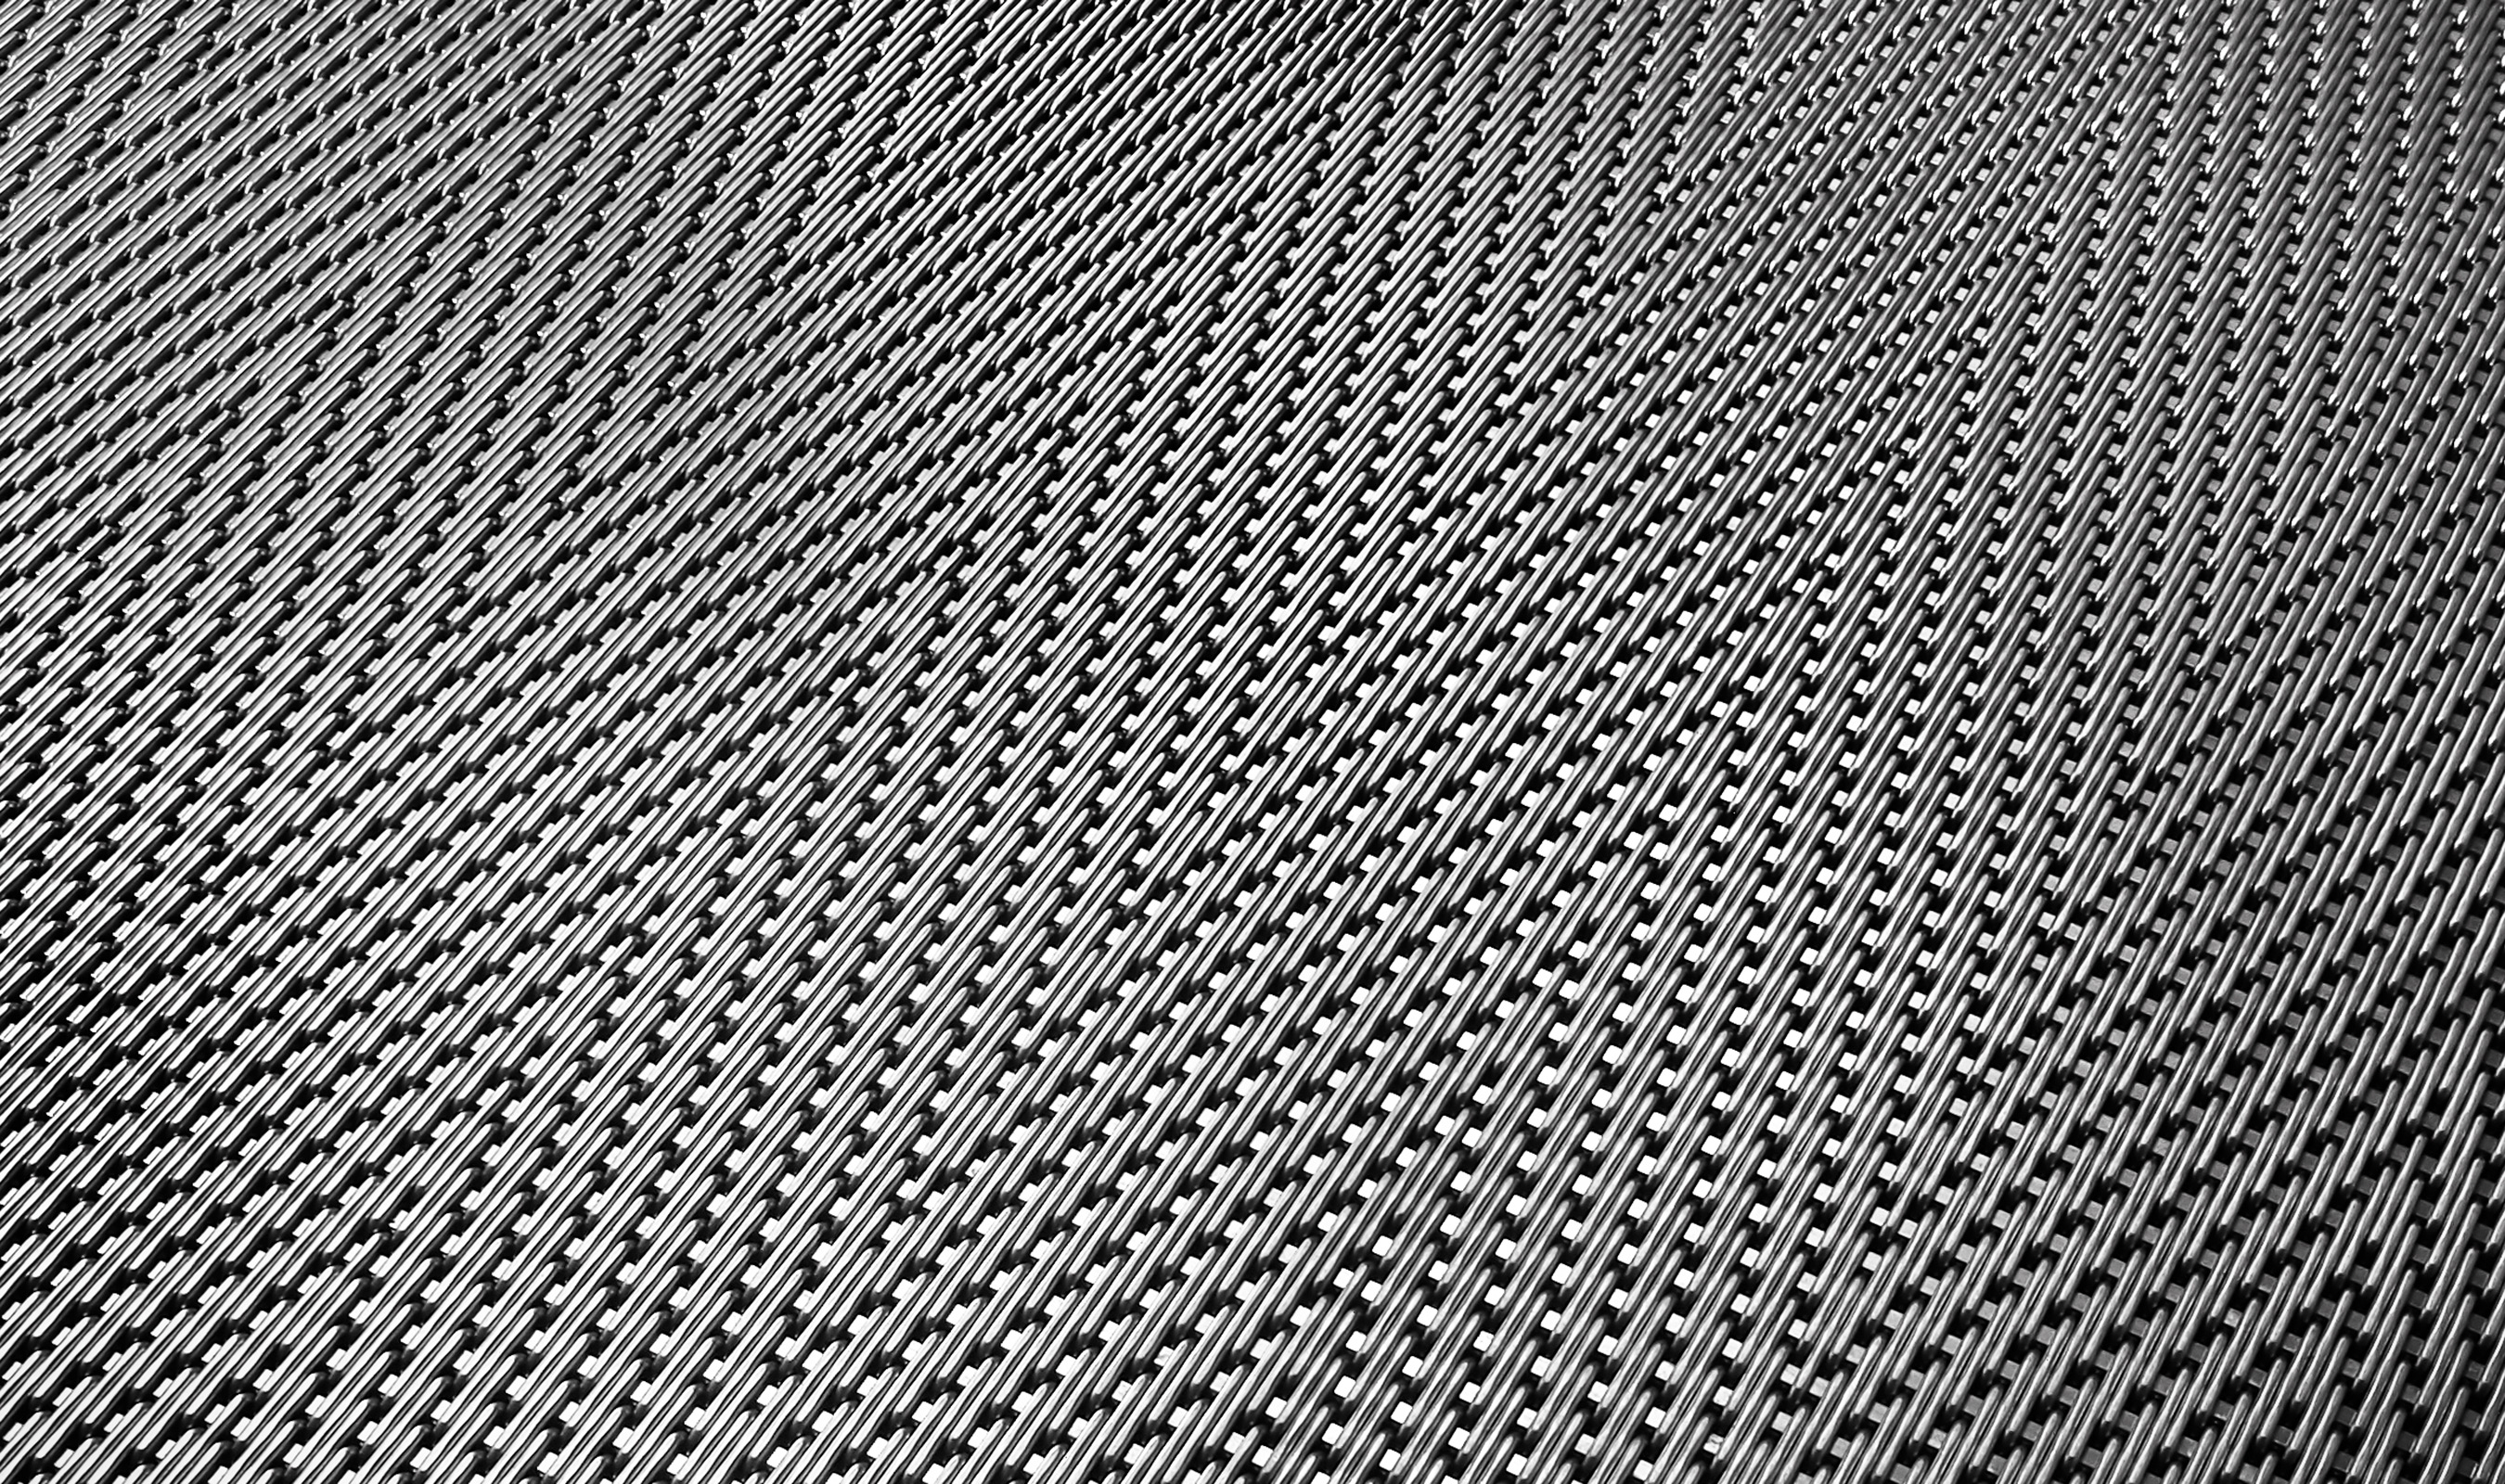 DT-1 architectural wire mesh woven in stainless steel